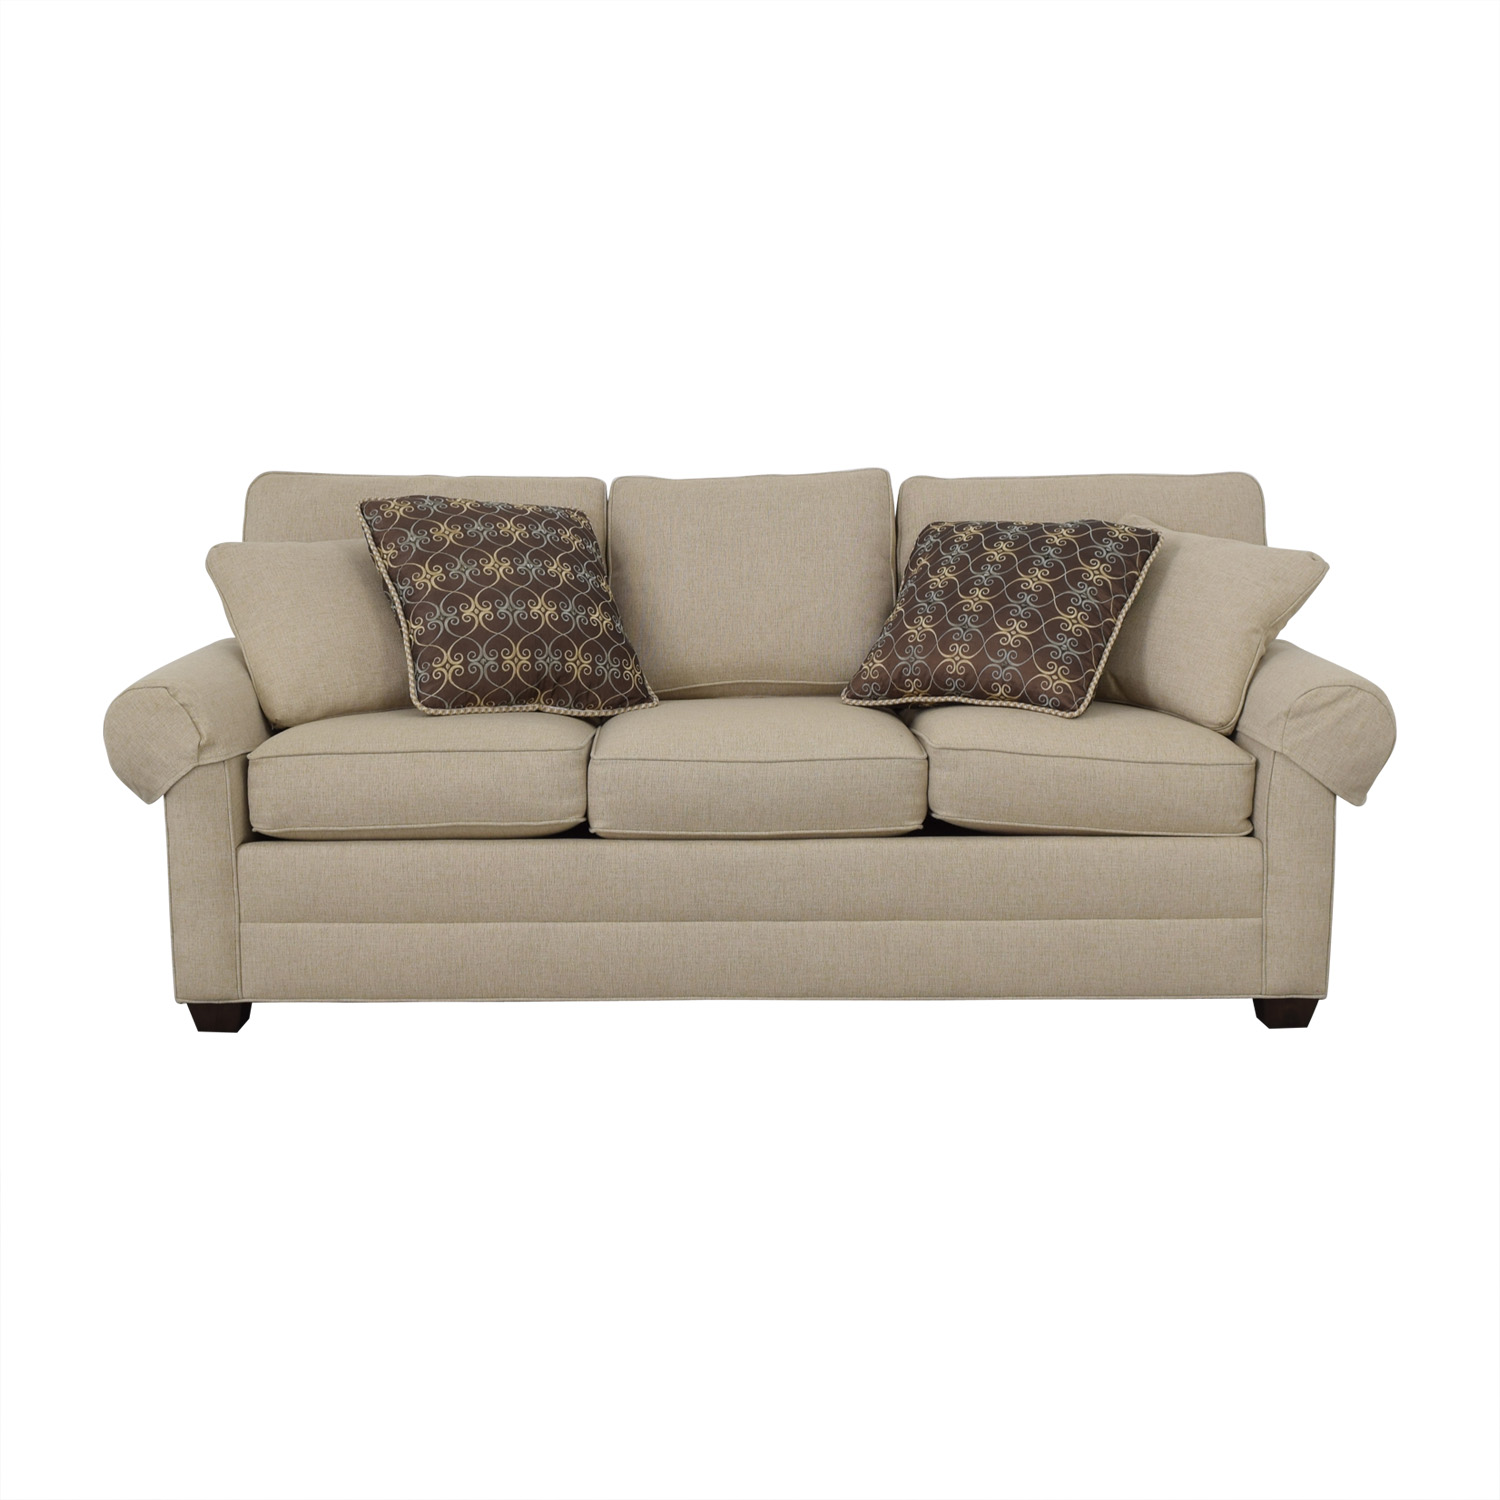 shop Ethan Allen Beige Three-Cushion Couch Ethan Allen Classic Sofas